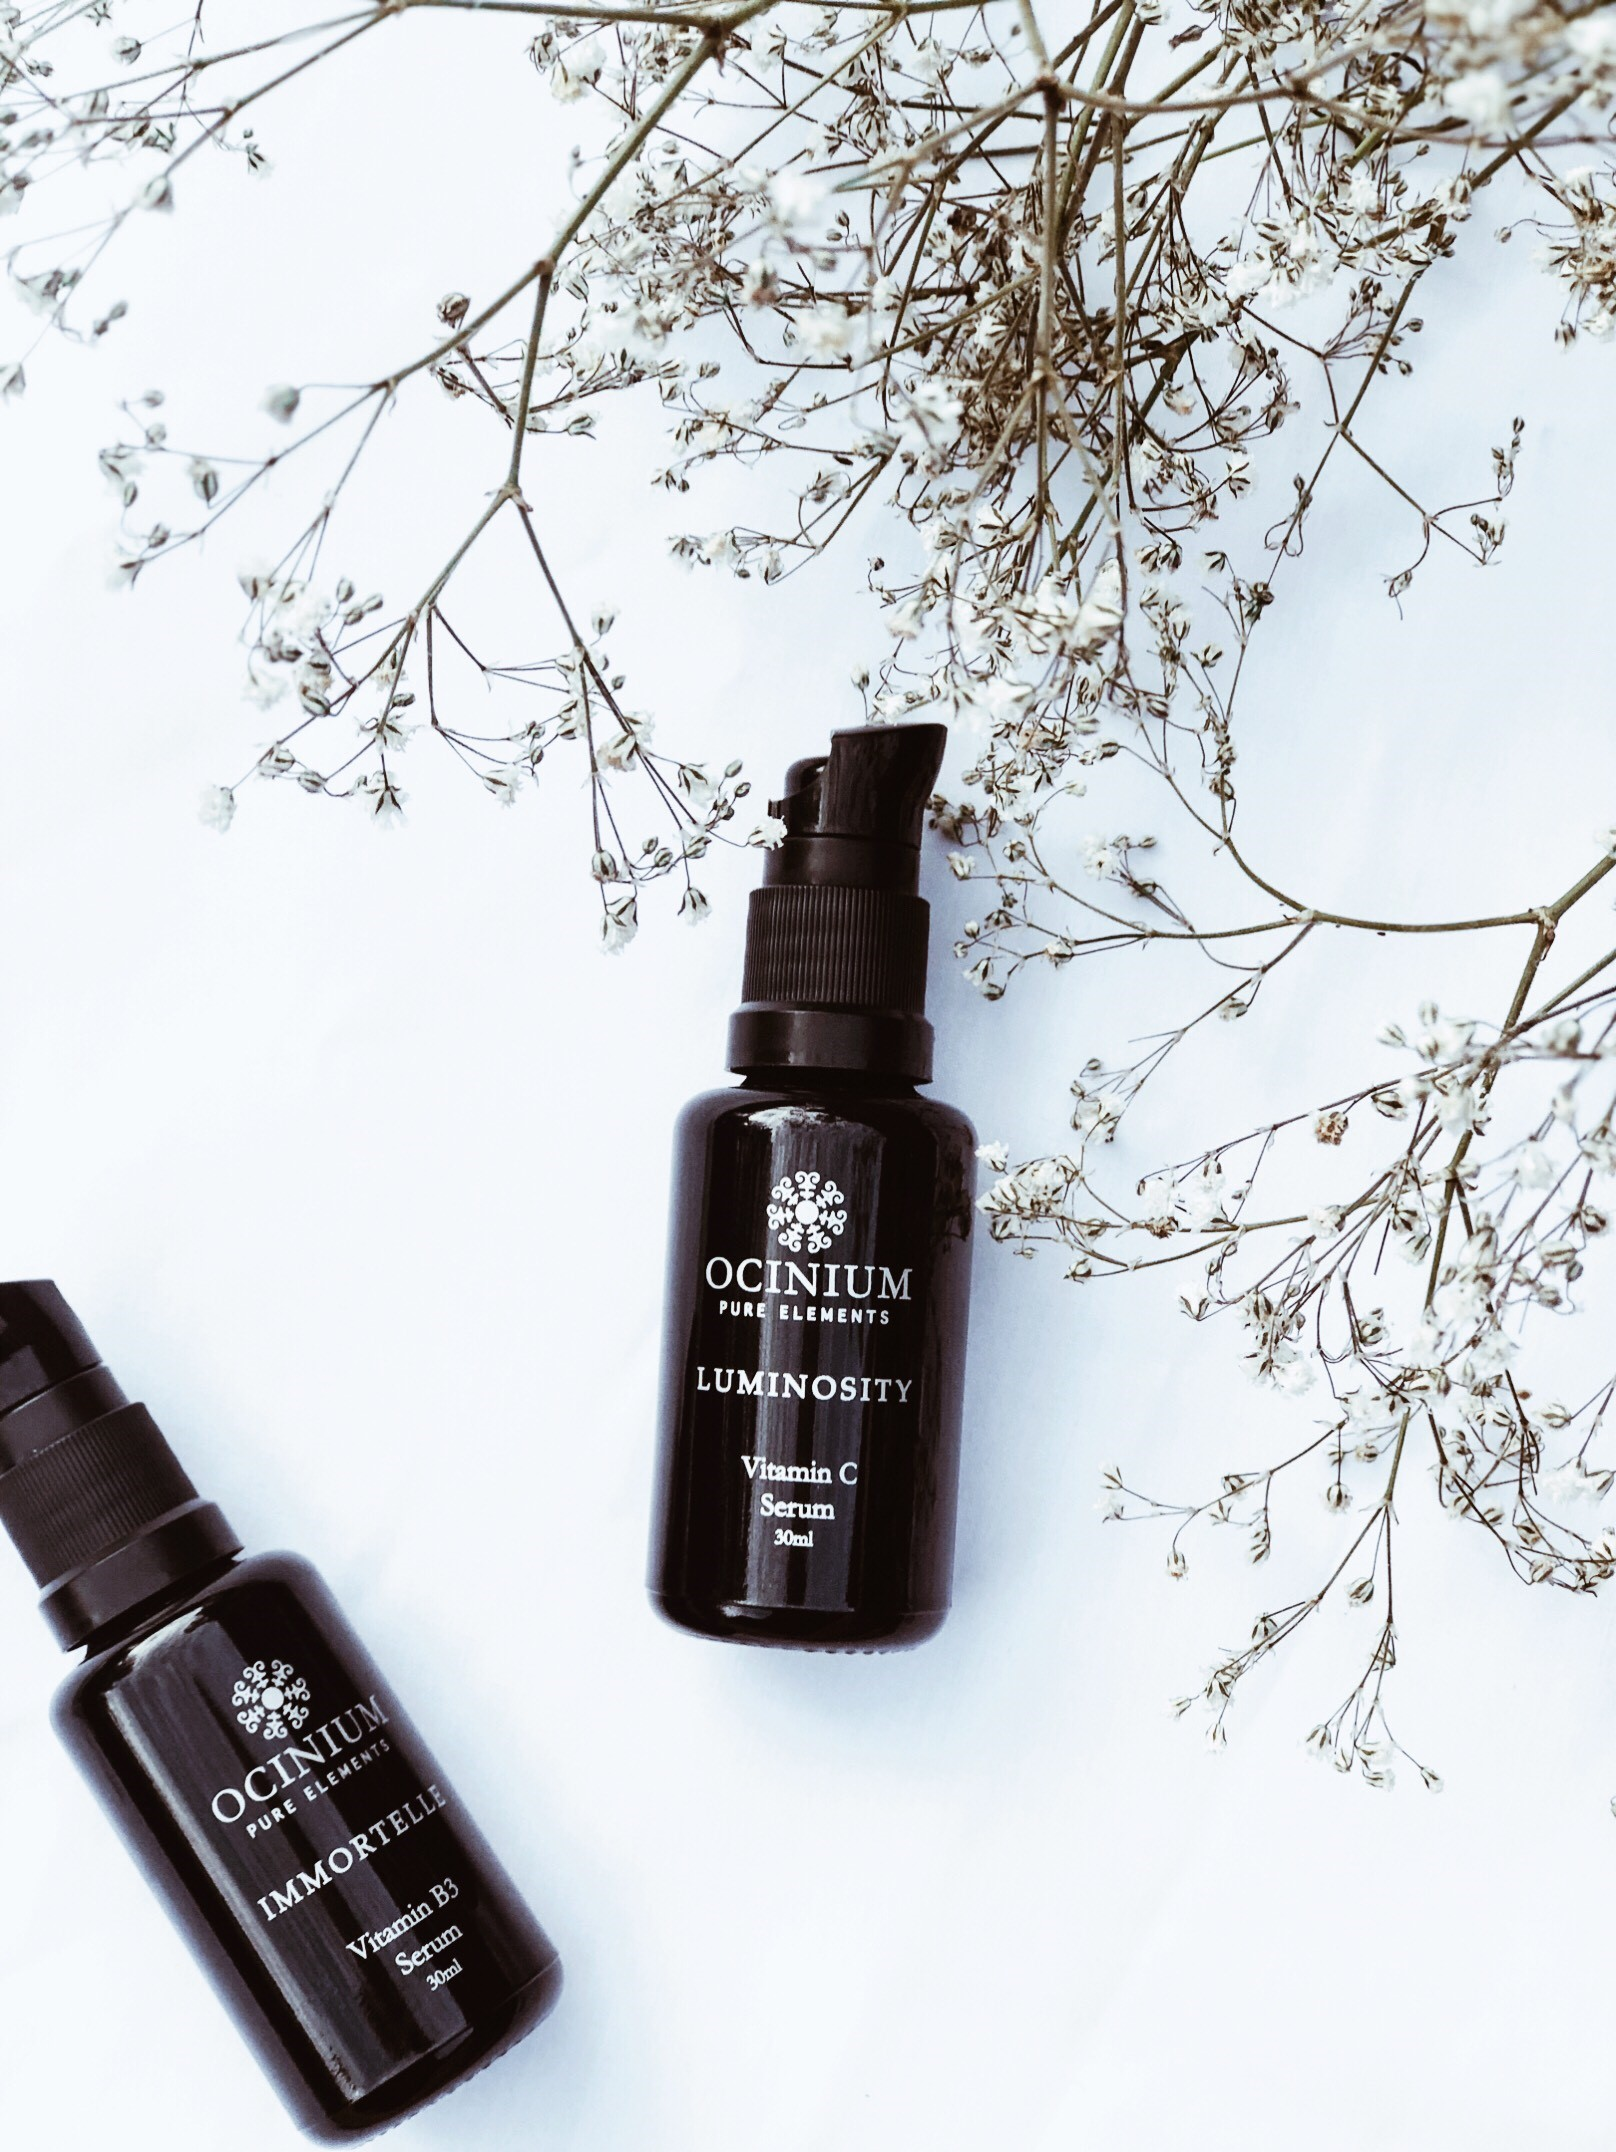 Ocinium's answer to brighter, clearer and overall healthier skin